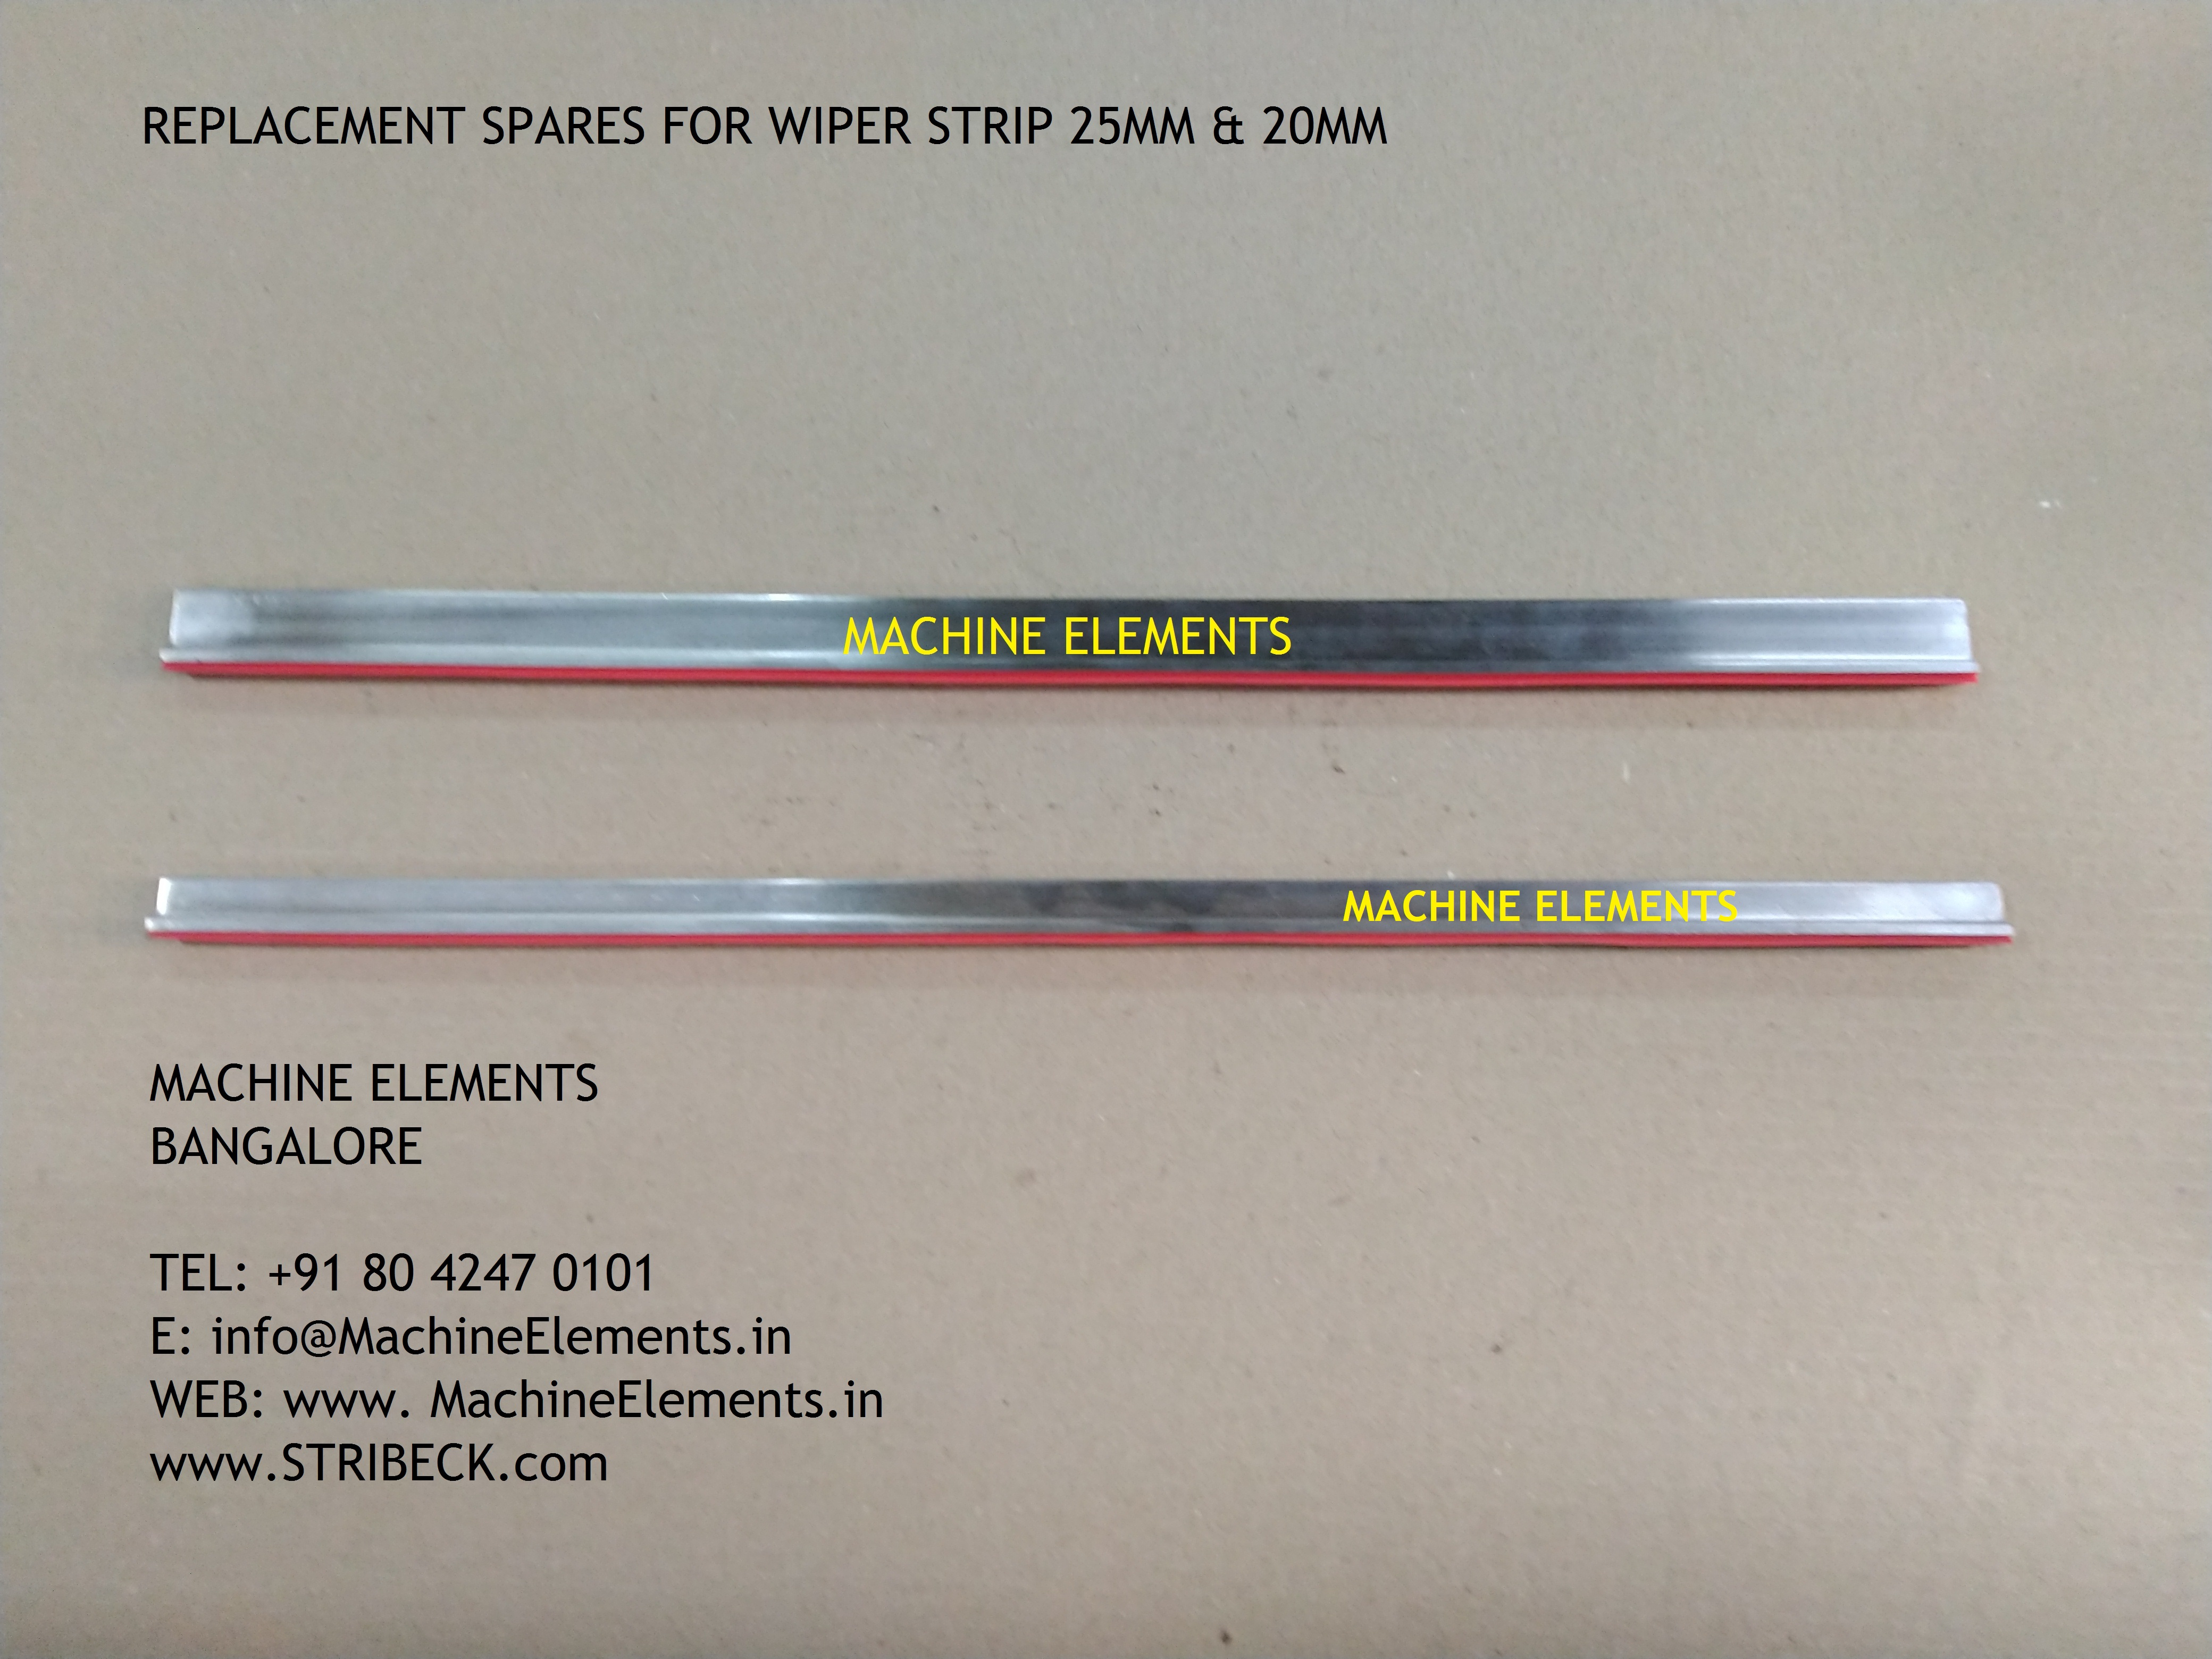 Wiper strip